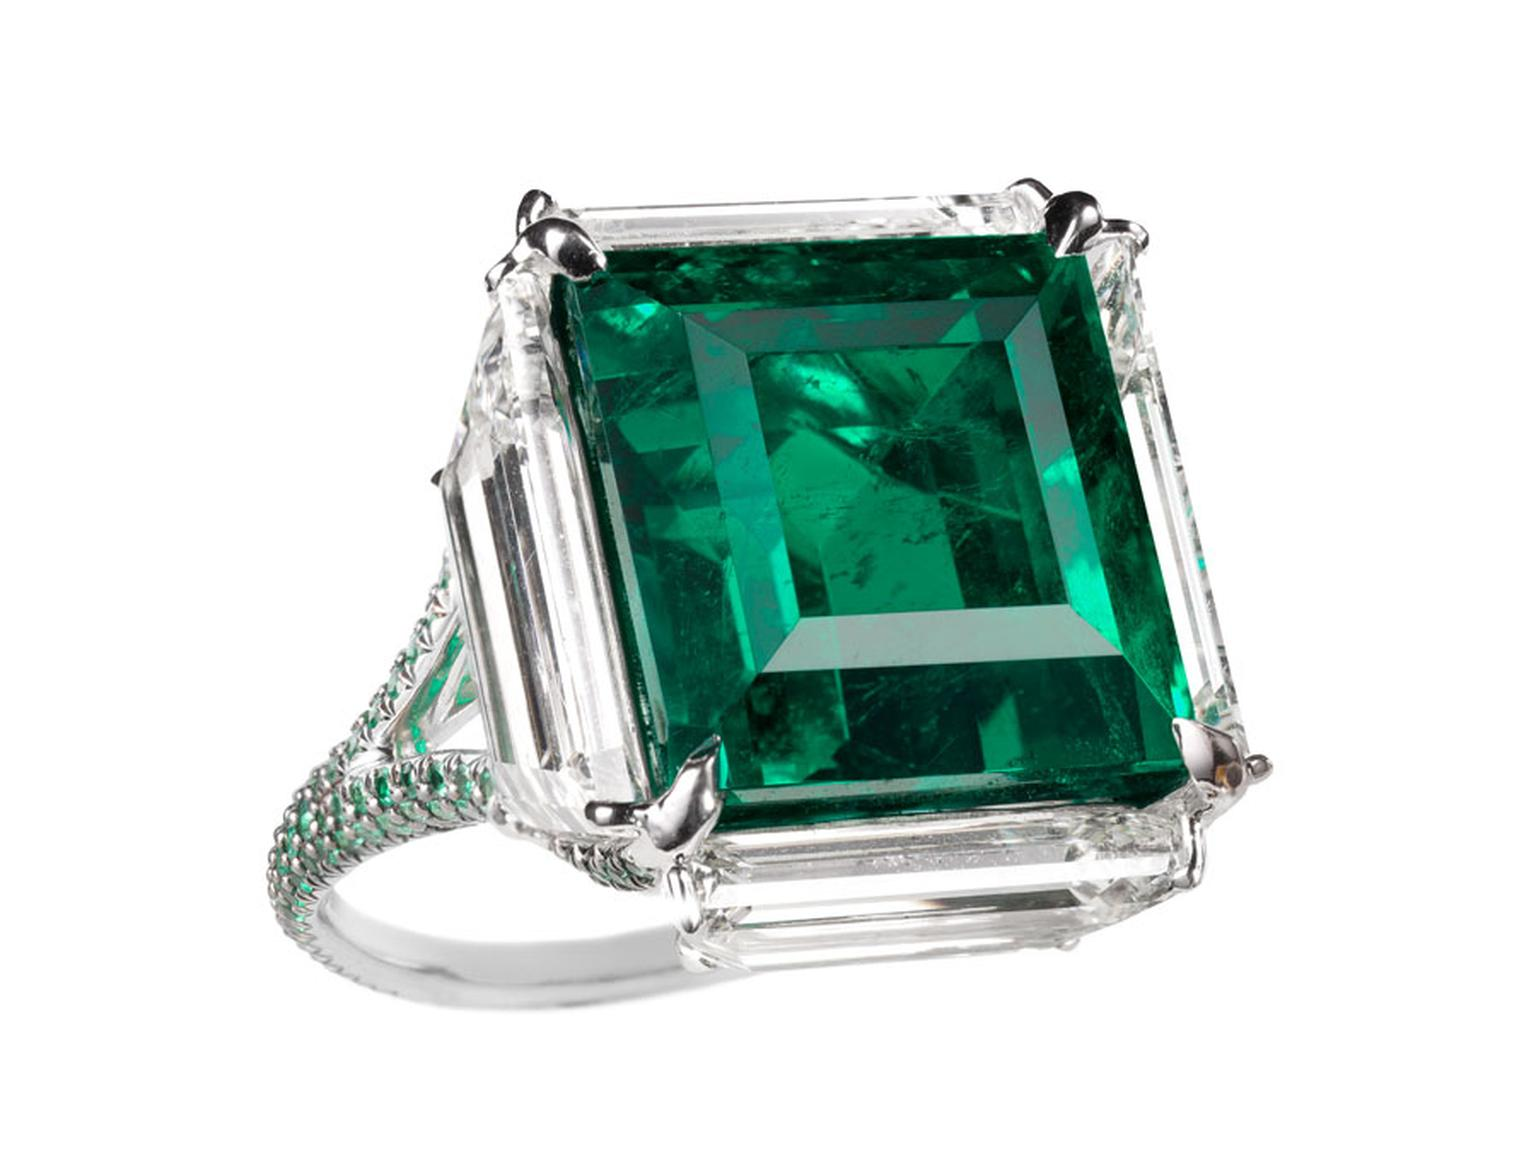 MPL-2013-BOGH-ART-Colombian-Emerald-surrounded-by-diamonds